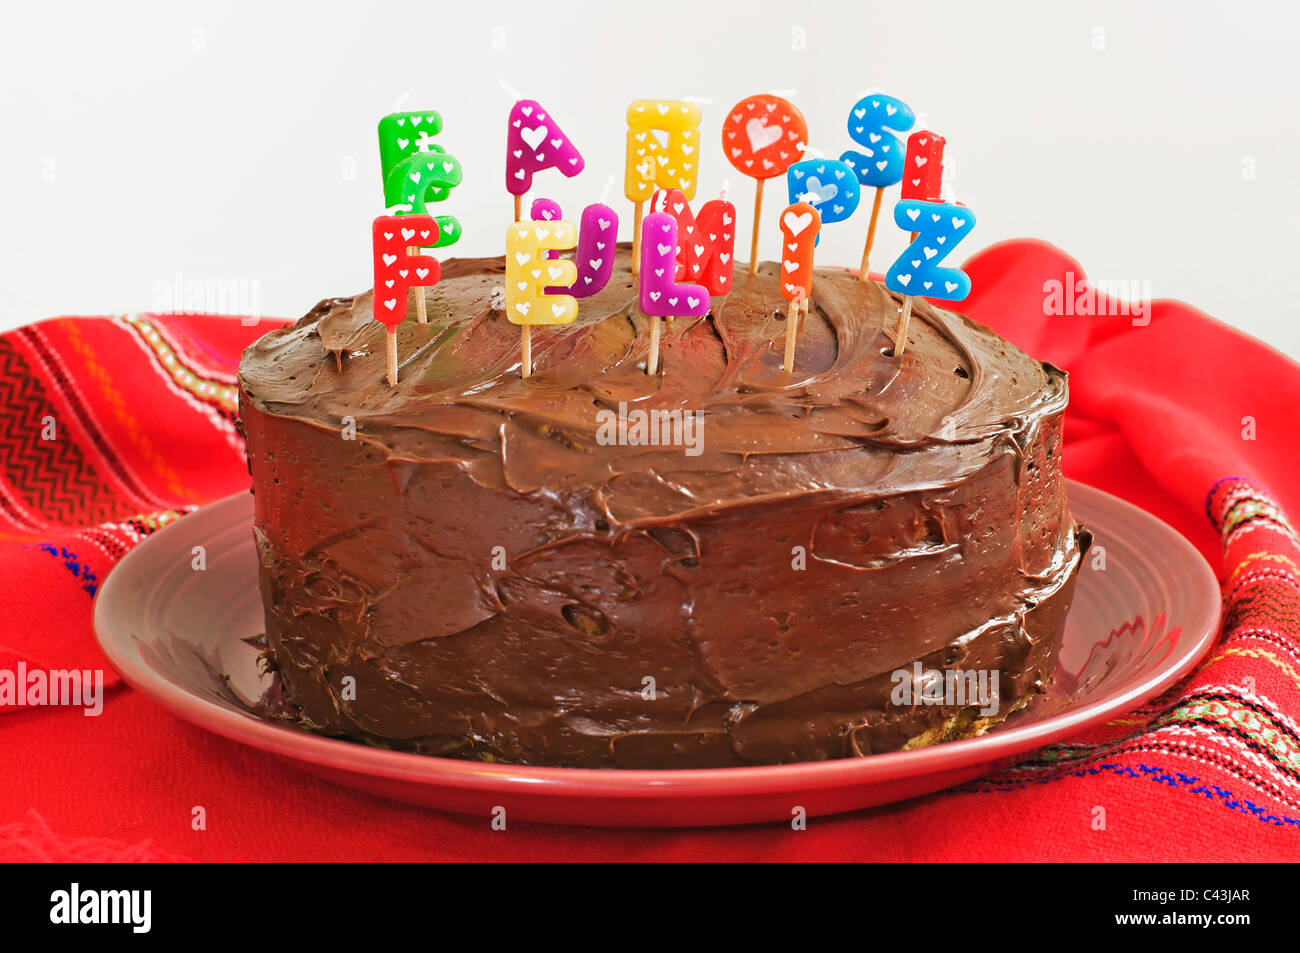 Stupendous Layered Birthday Cake With Chocolate Frosting And Decorated With Funny Birthday Cards Online Inifodamsfinfo